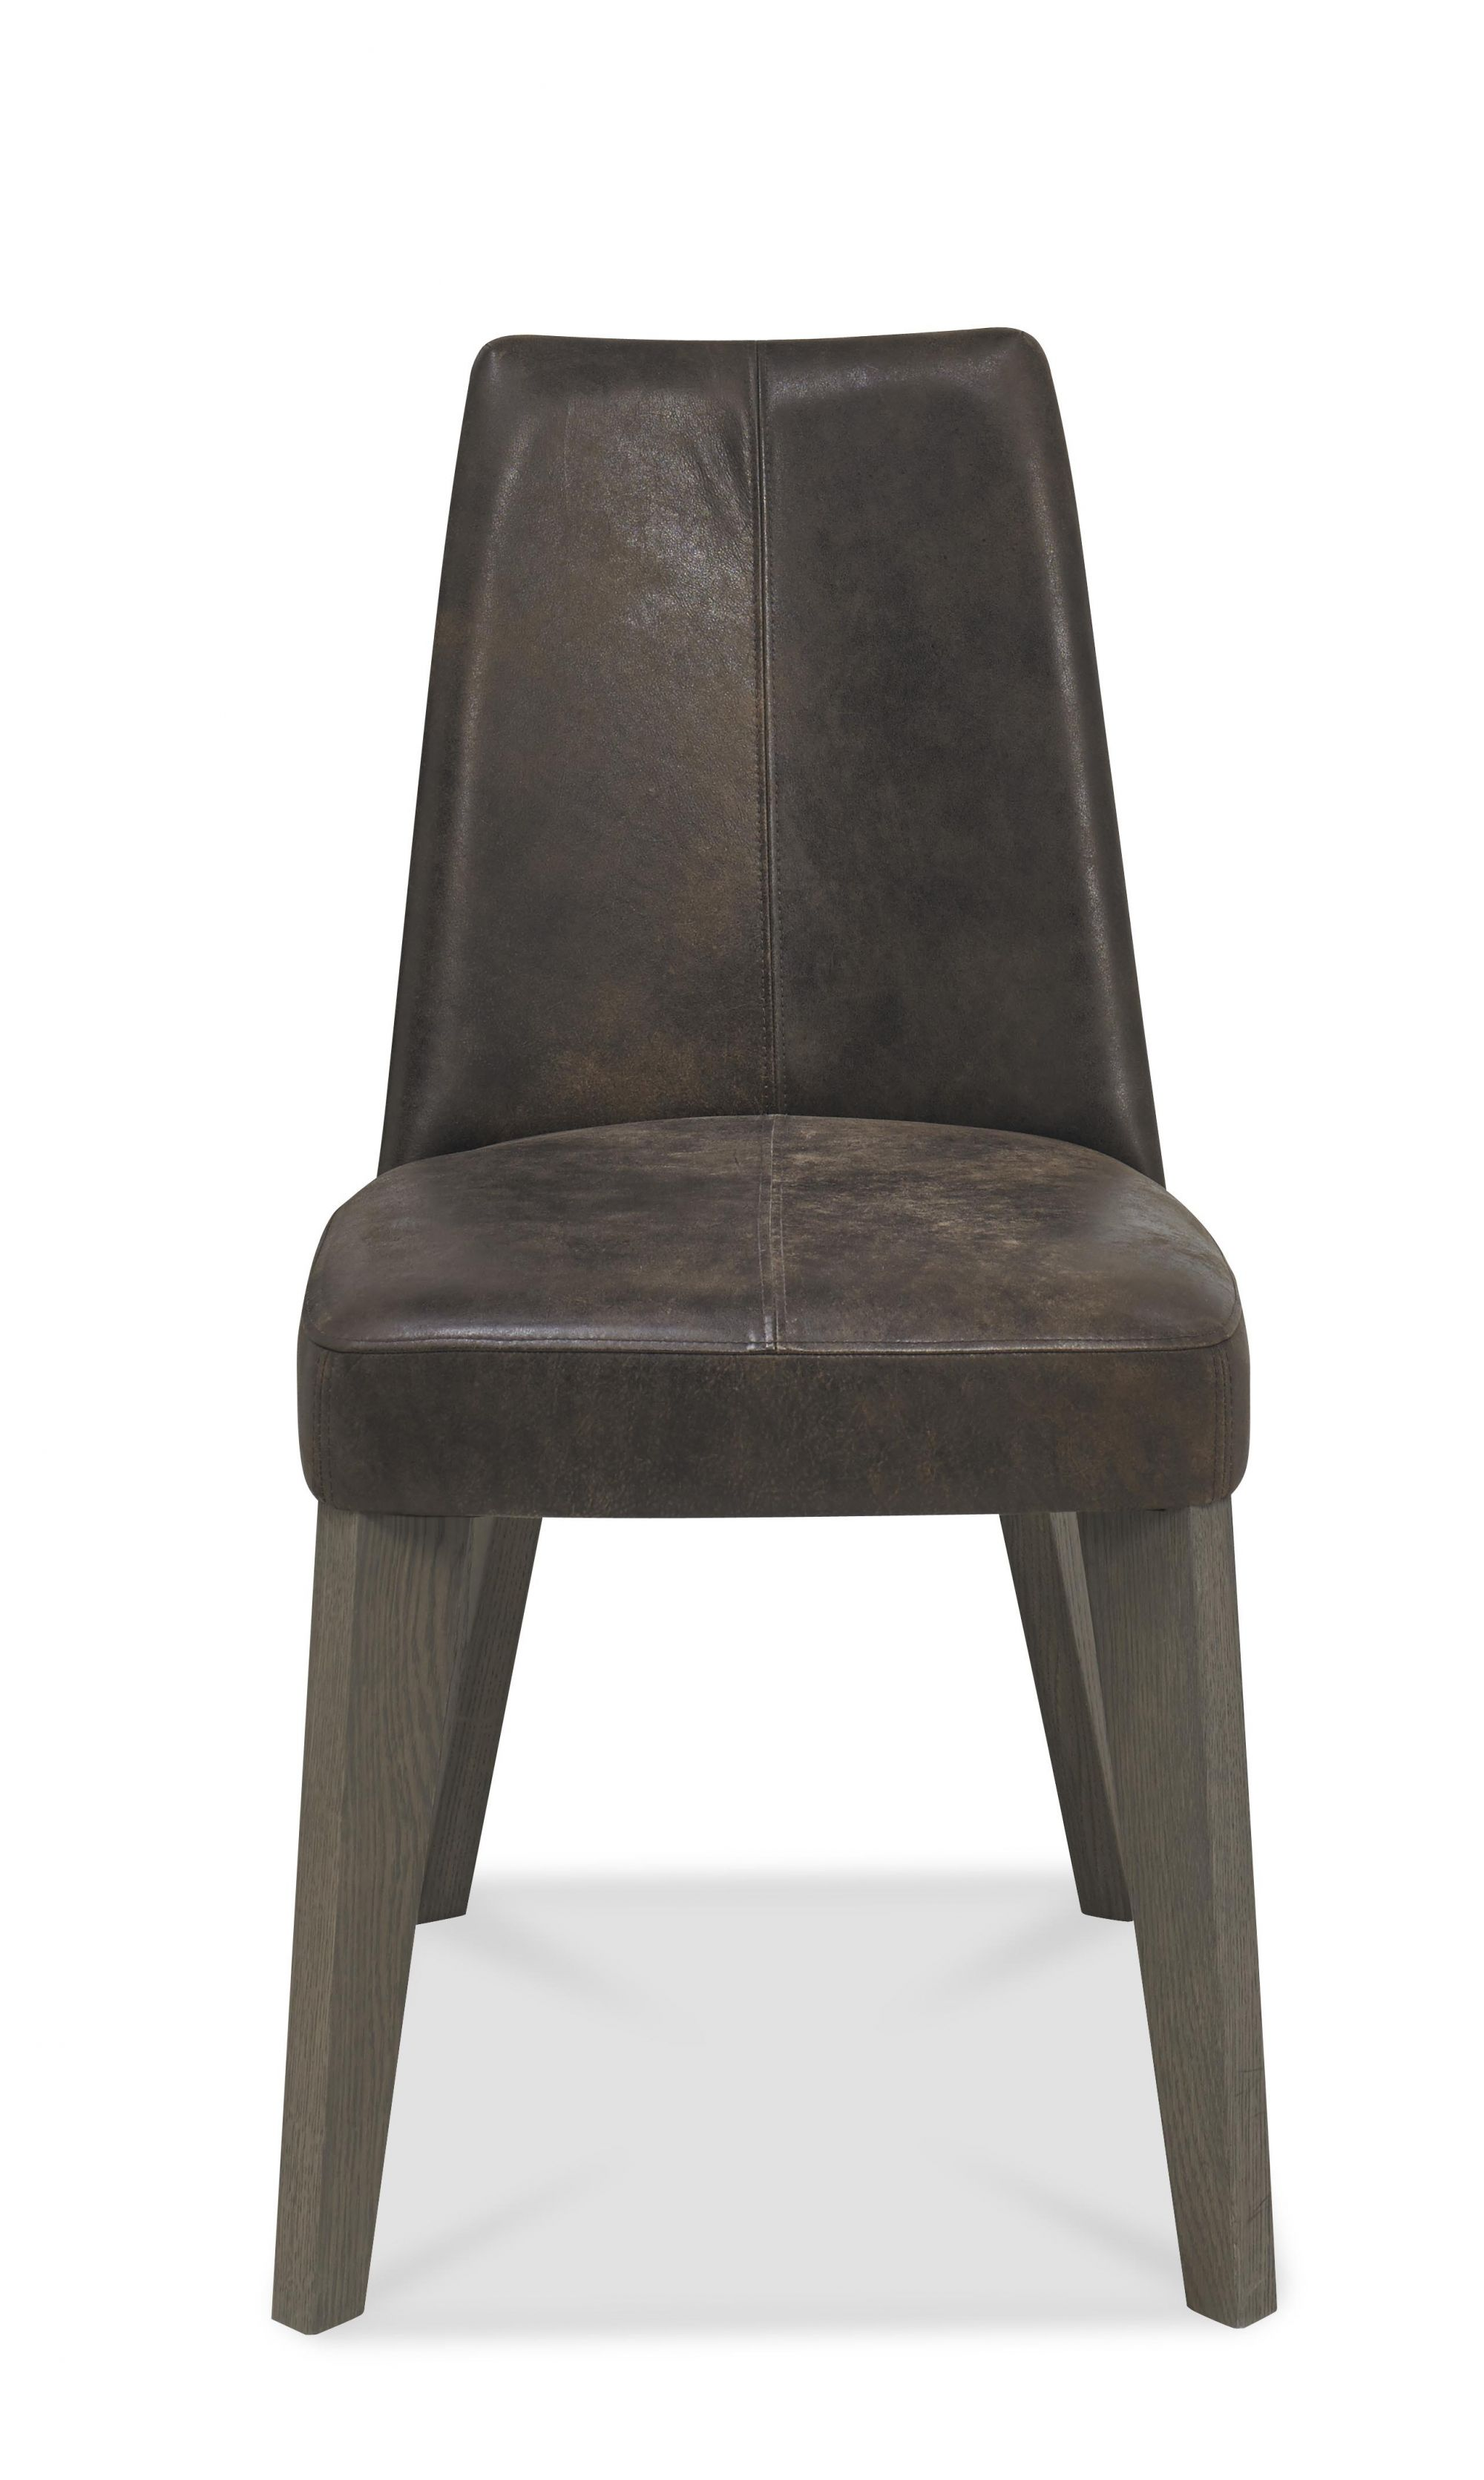 https://www.firstfurniture.co.uk/pub/media/catalog/product/6/0/6040-09UB-DBR-C2.jpg